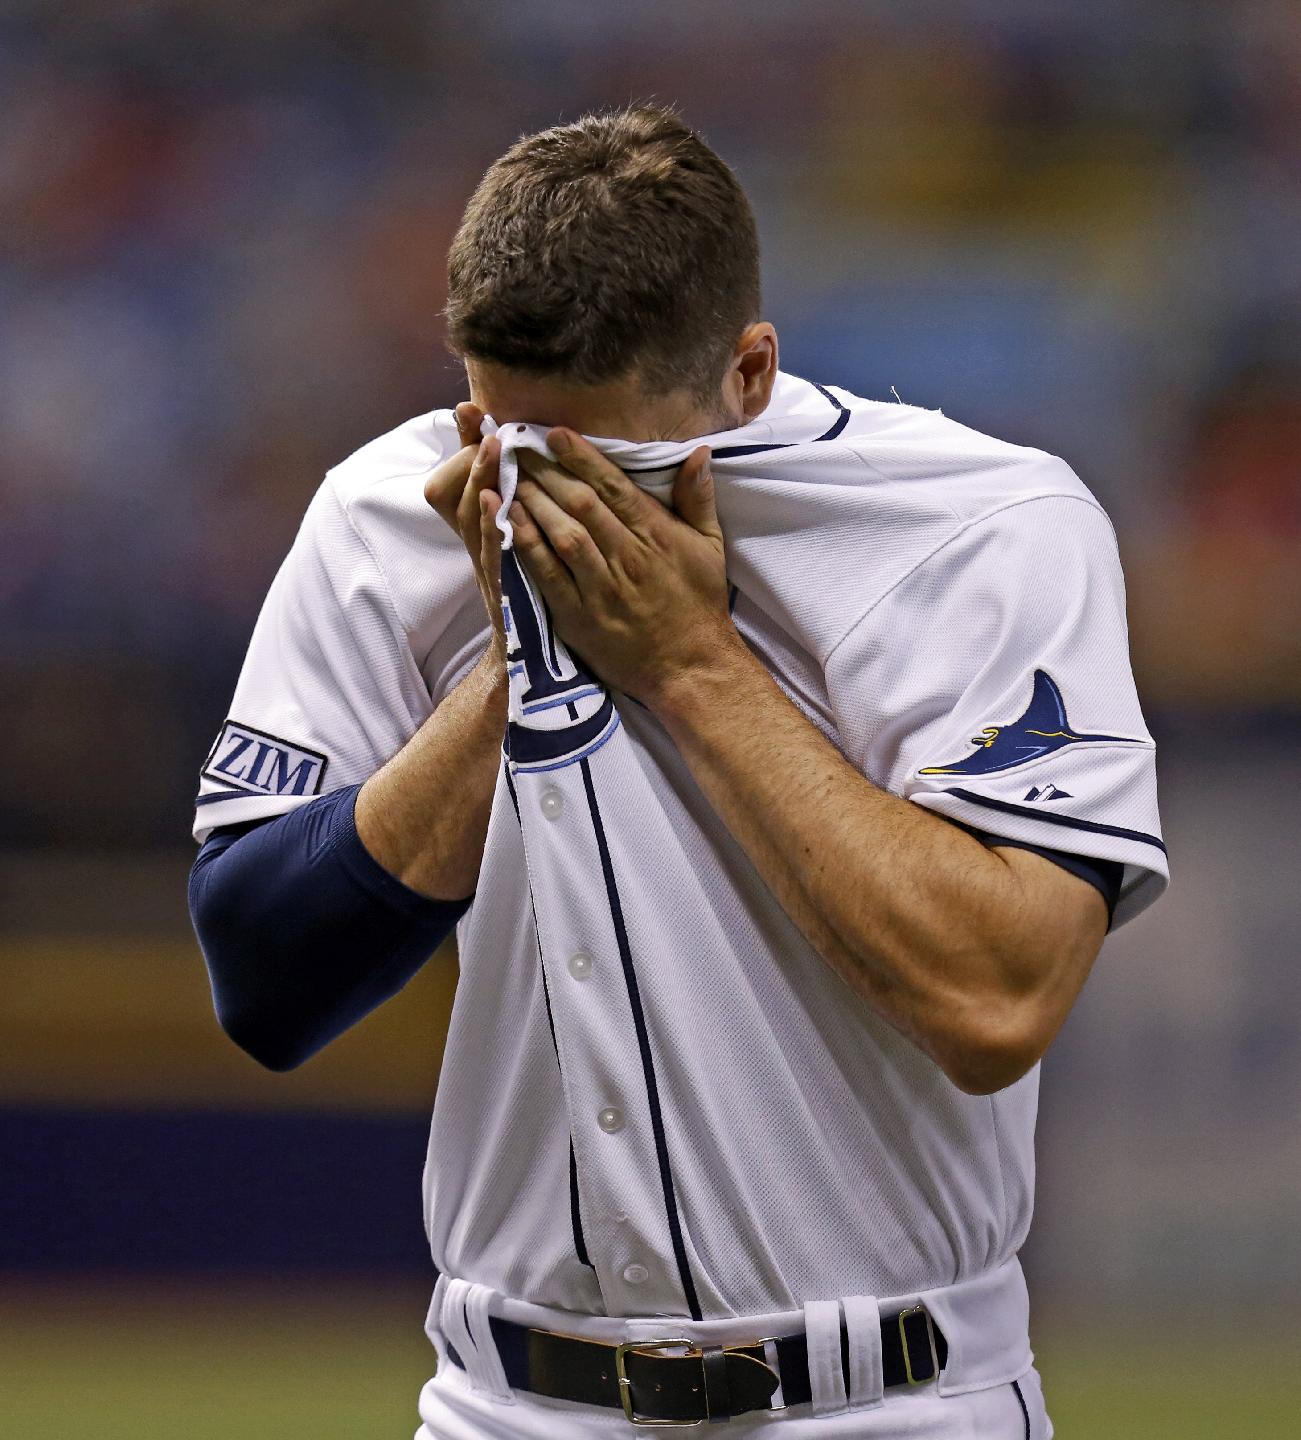 Rays end offensive drought, split series